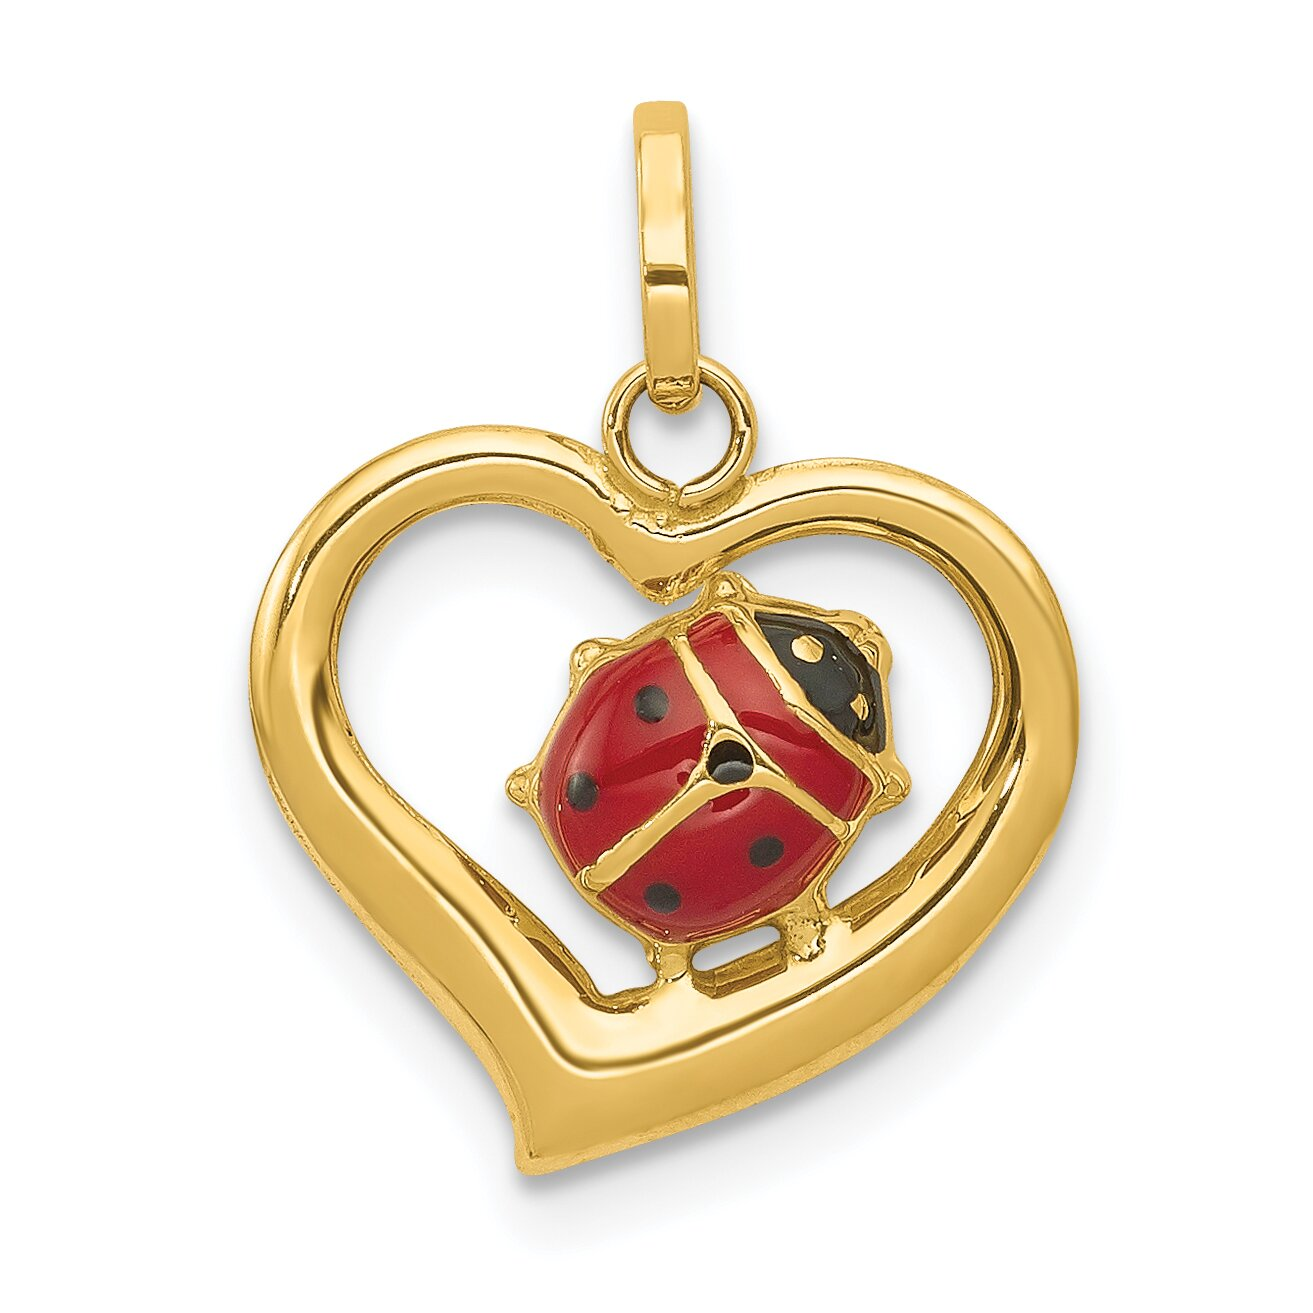 14k Yellow Gold Enameled Ladybug Heart Charm Jewelry Ebay